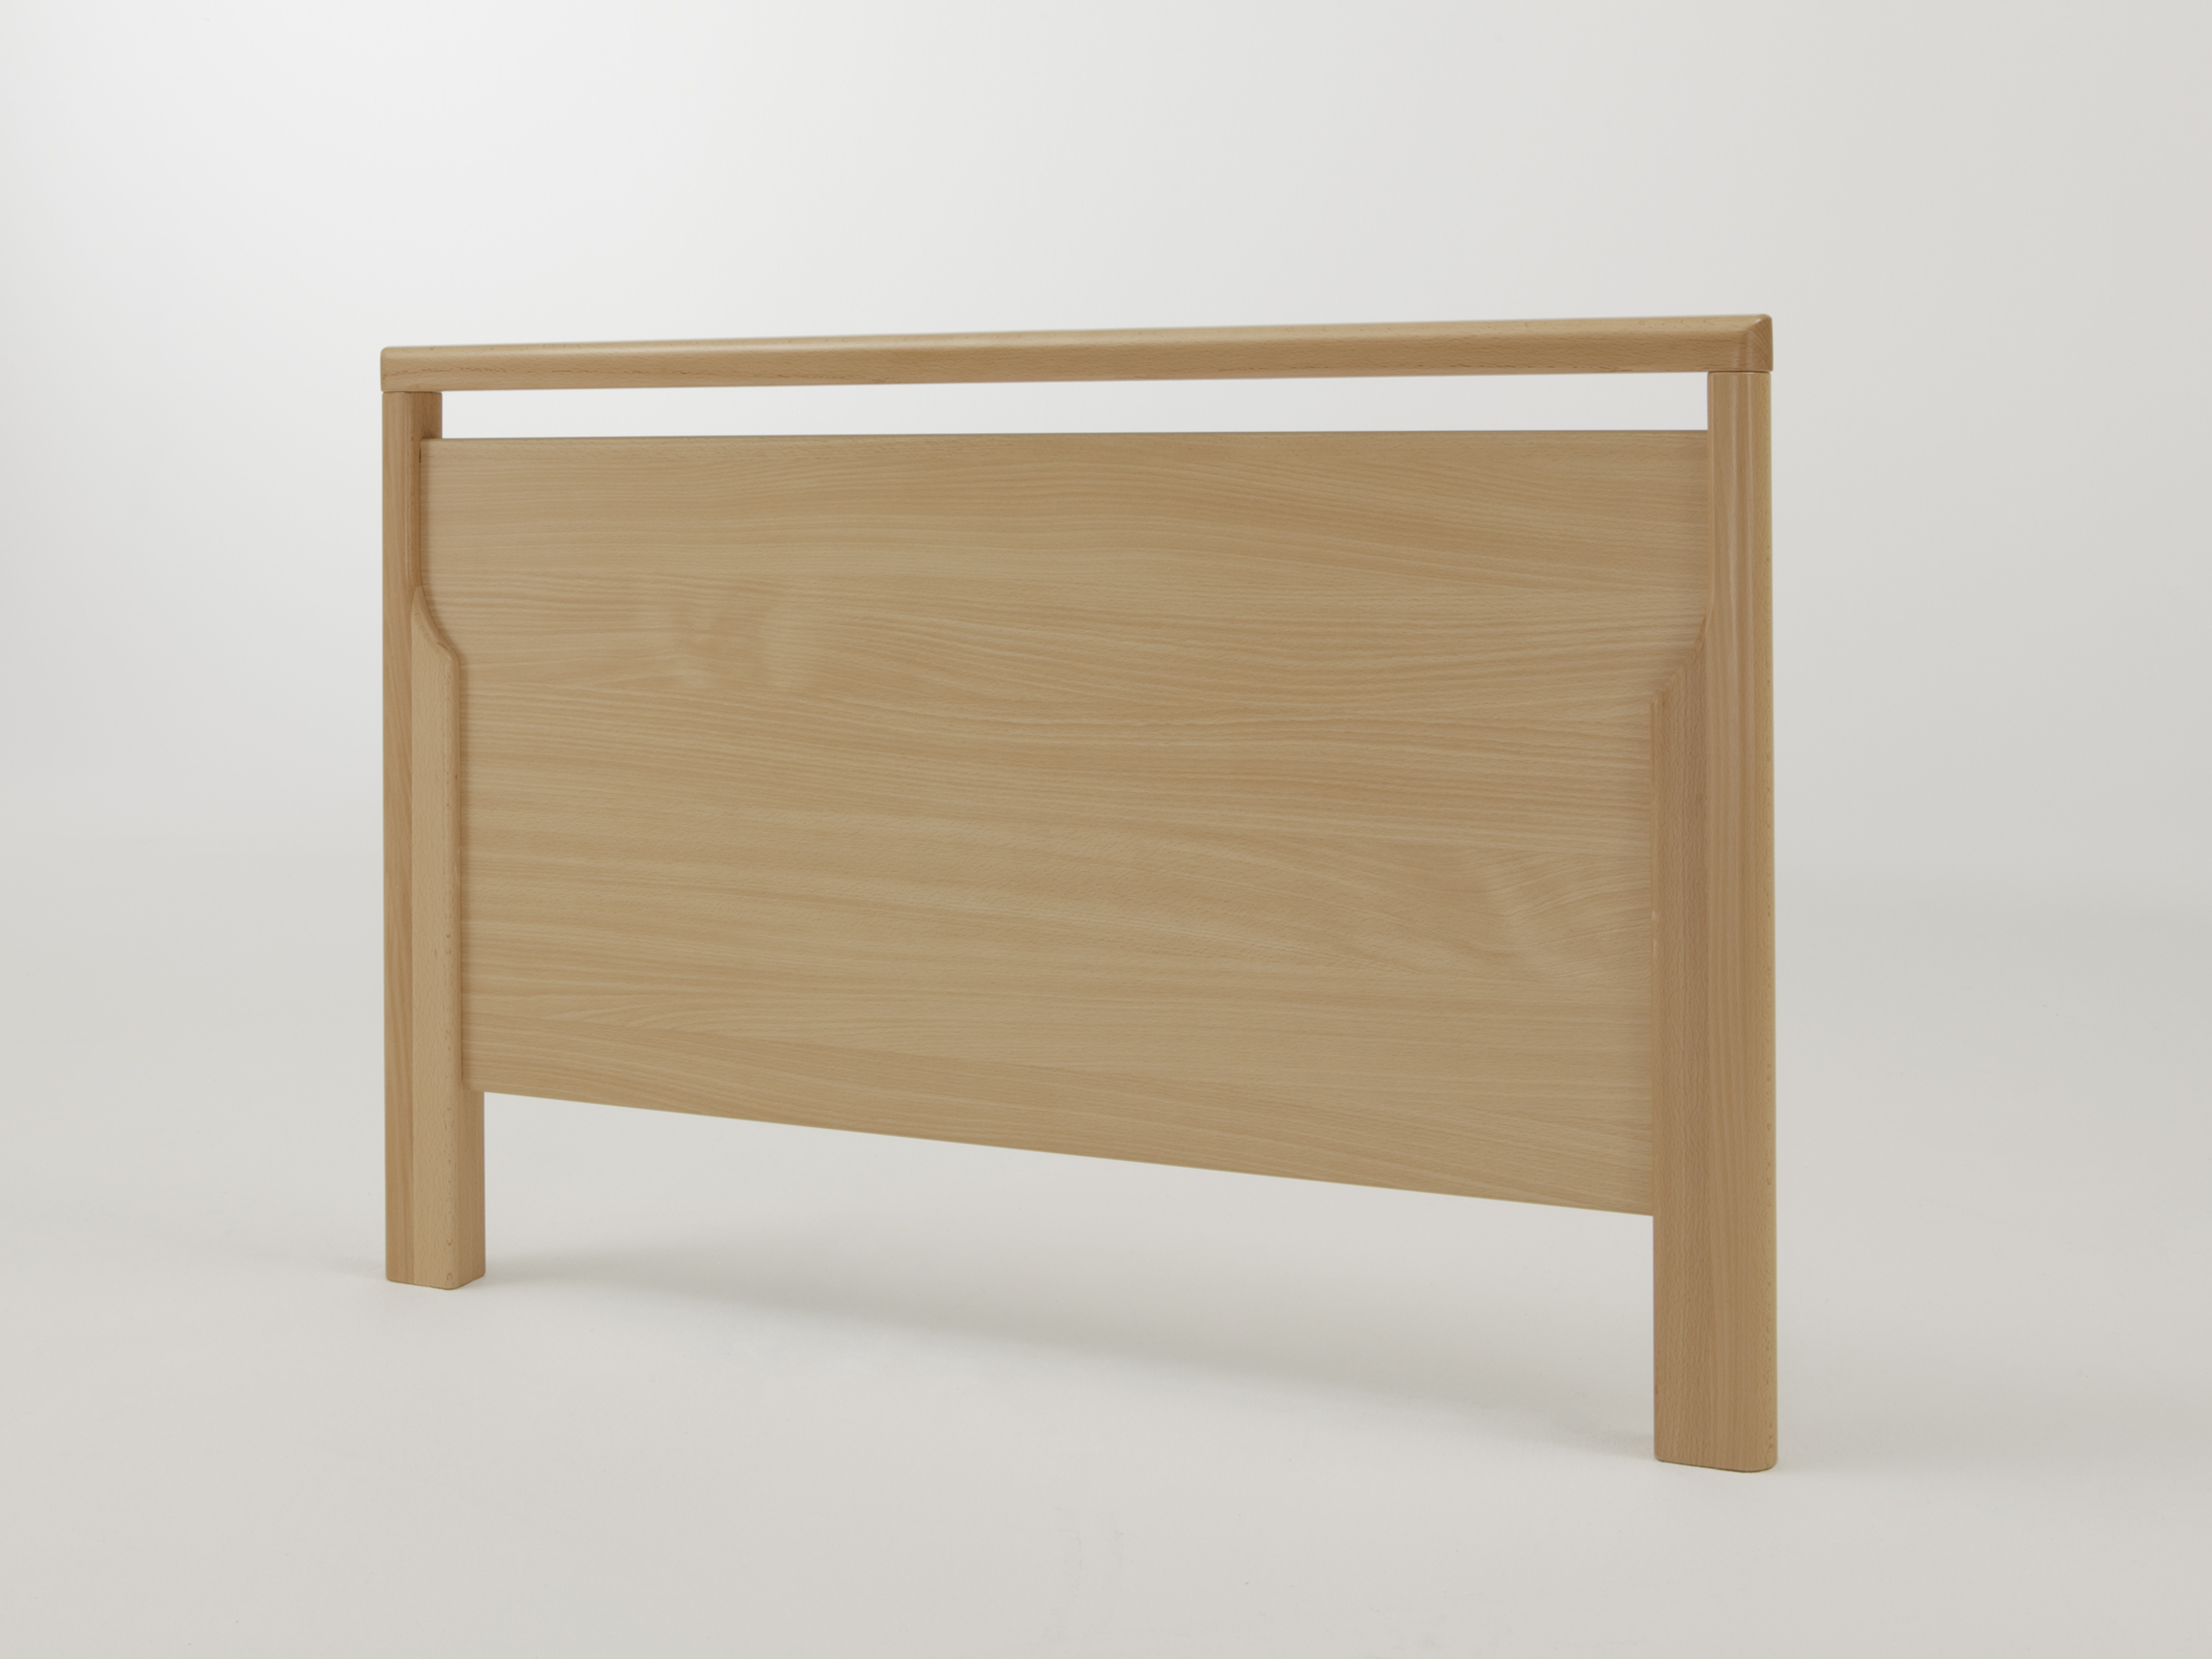 Natural Beech decor of the Relax bed frame